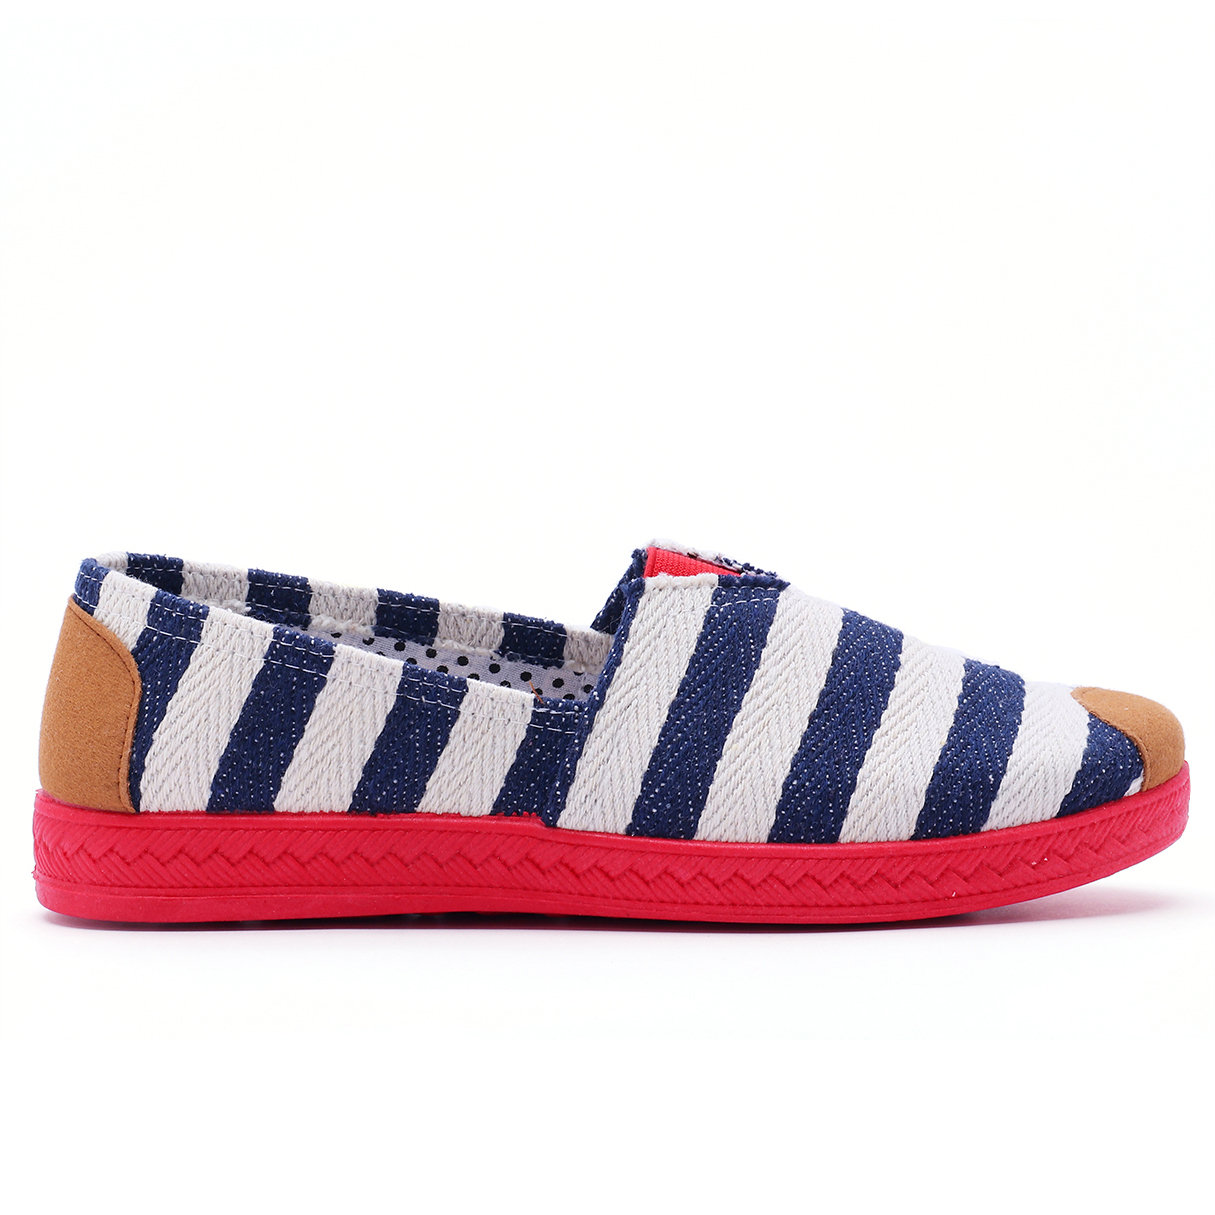 Blue Canvas Stripes Pattern Contract Color Flats contract damages domestic and international perspectives